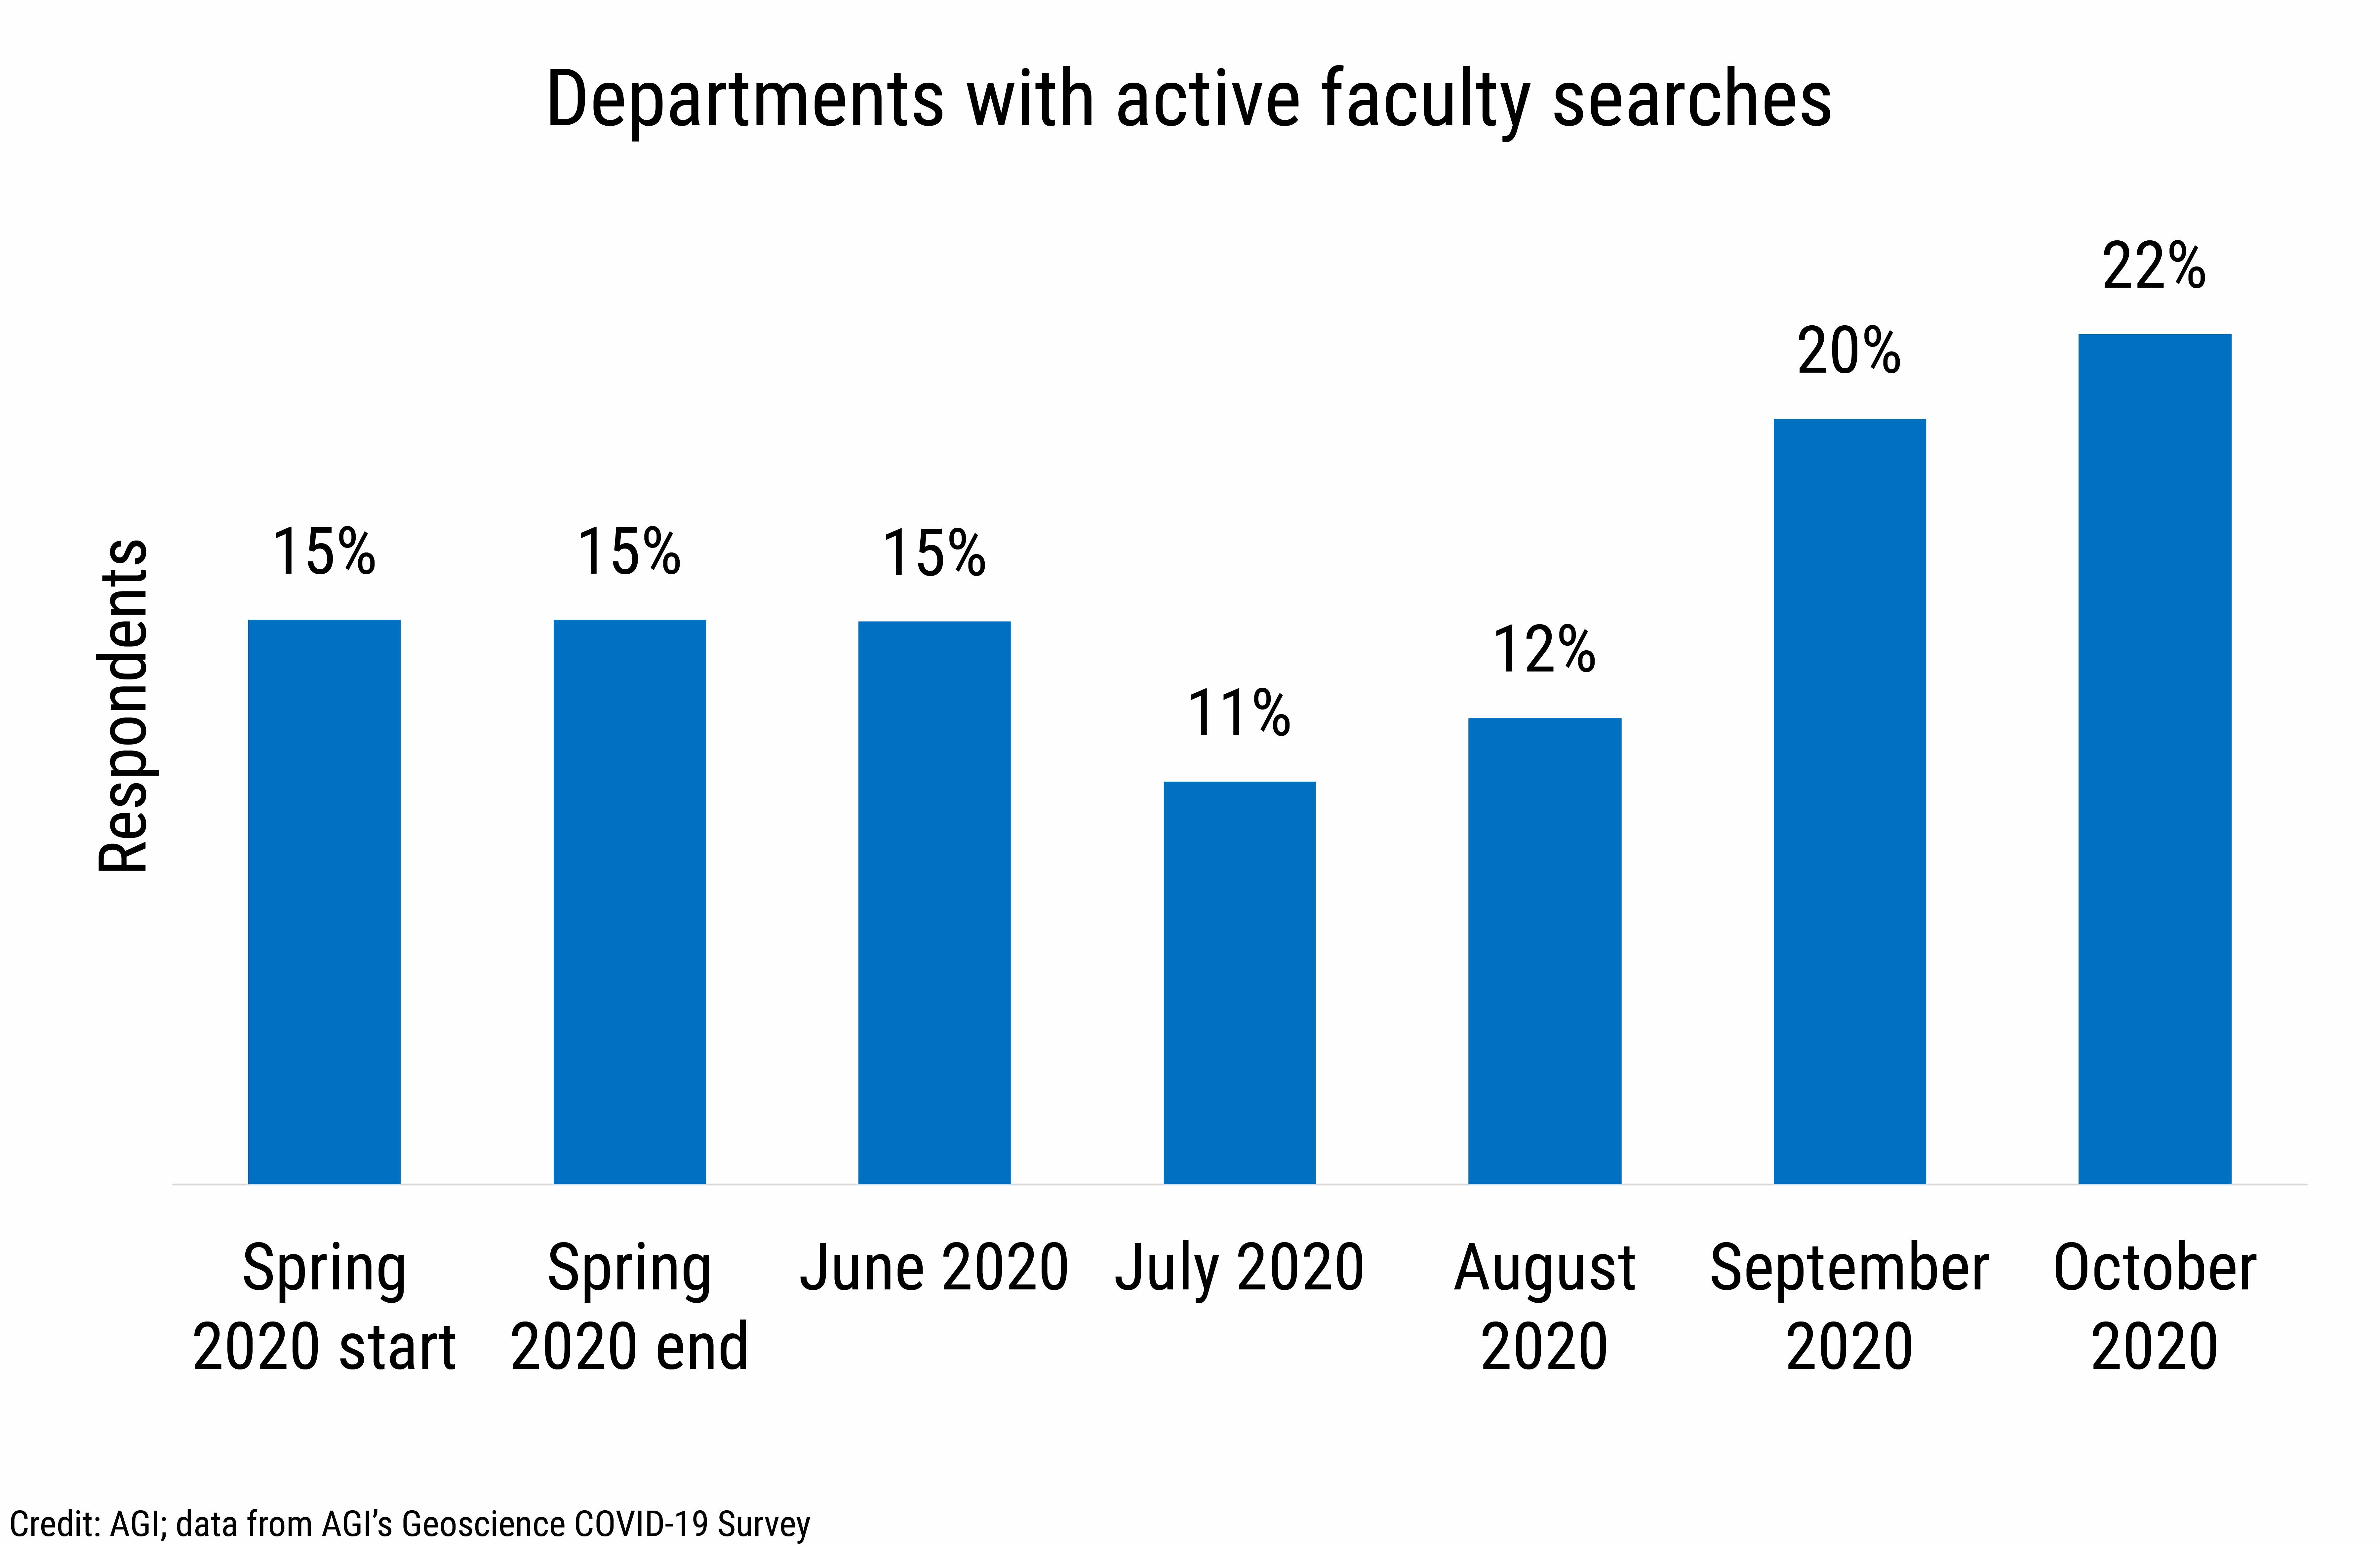 DB_2020-028 chart 04:  Departments with active faculty searches (Credit: AGI; data from AGI's Geoscience COVID-19 Survey)